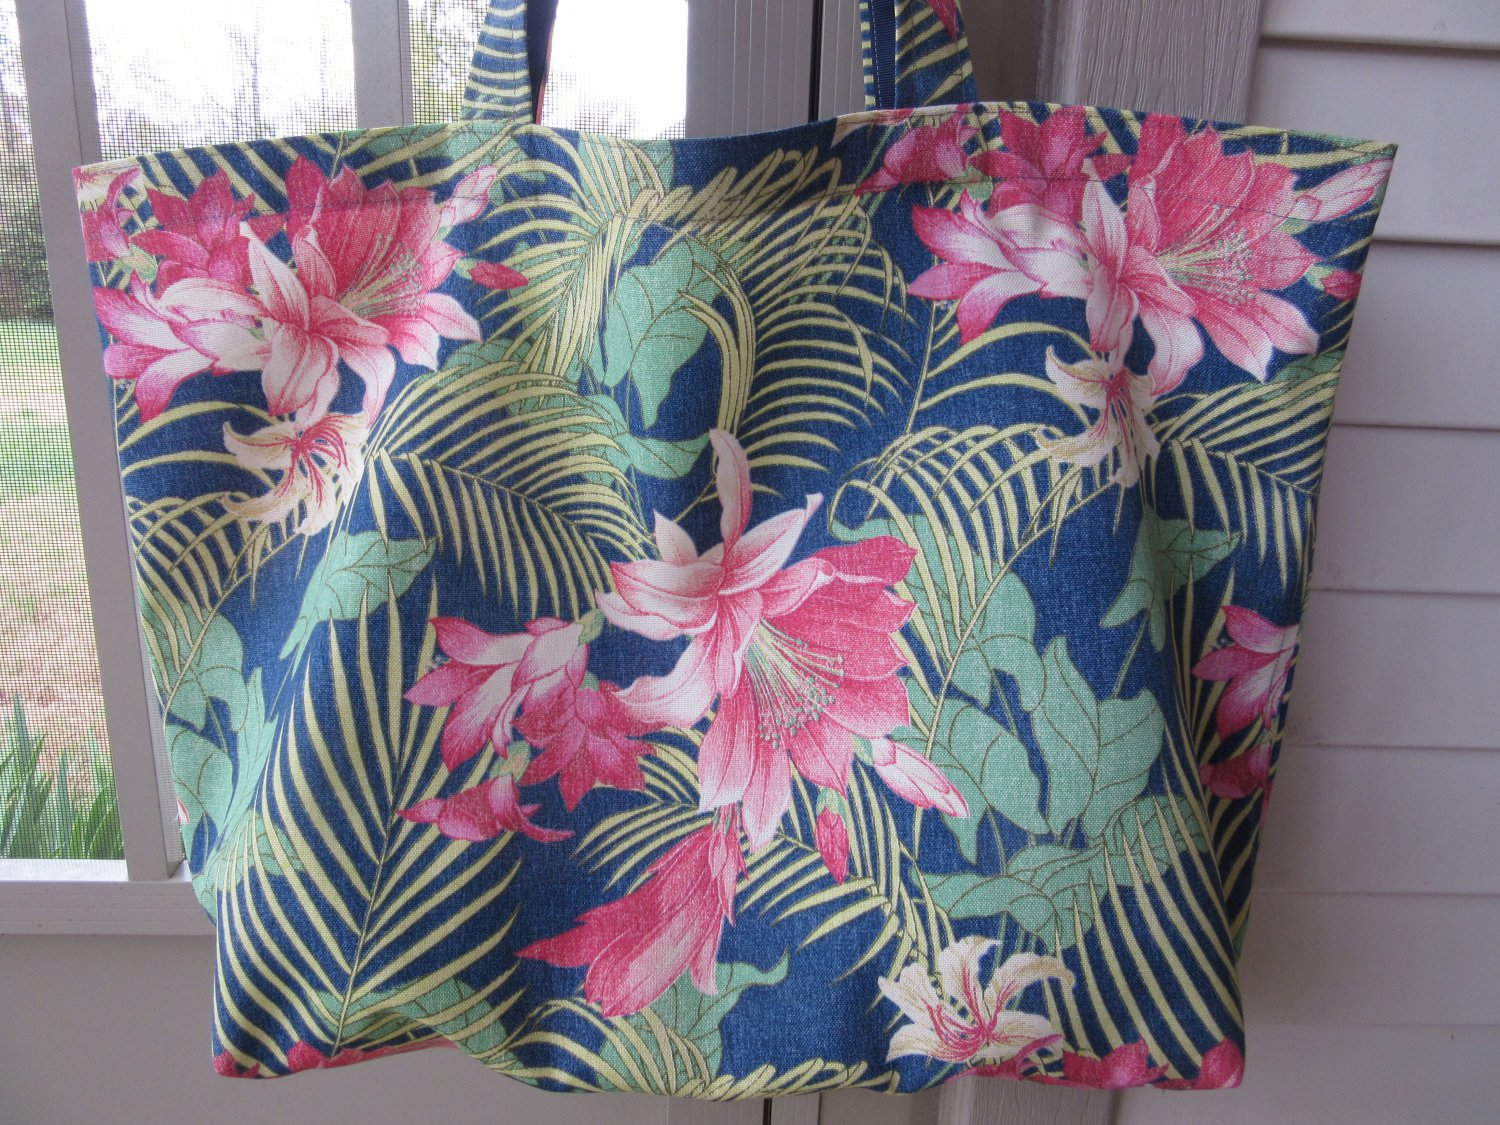 NEW Lg Tommy Bahama Tropic Floral Designer Print Folding Eco Friendly Tote Bag, Cell Phone Pocket